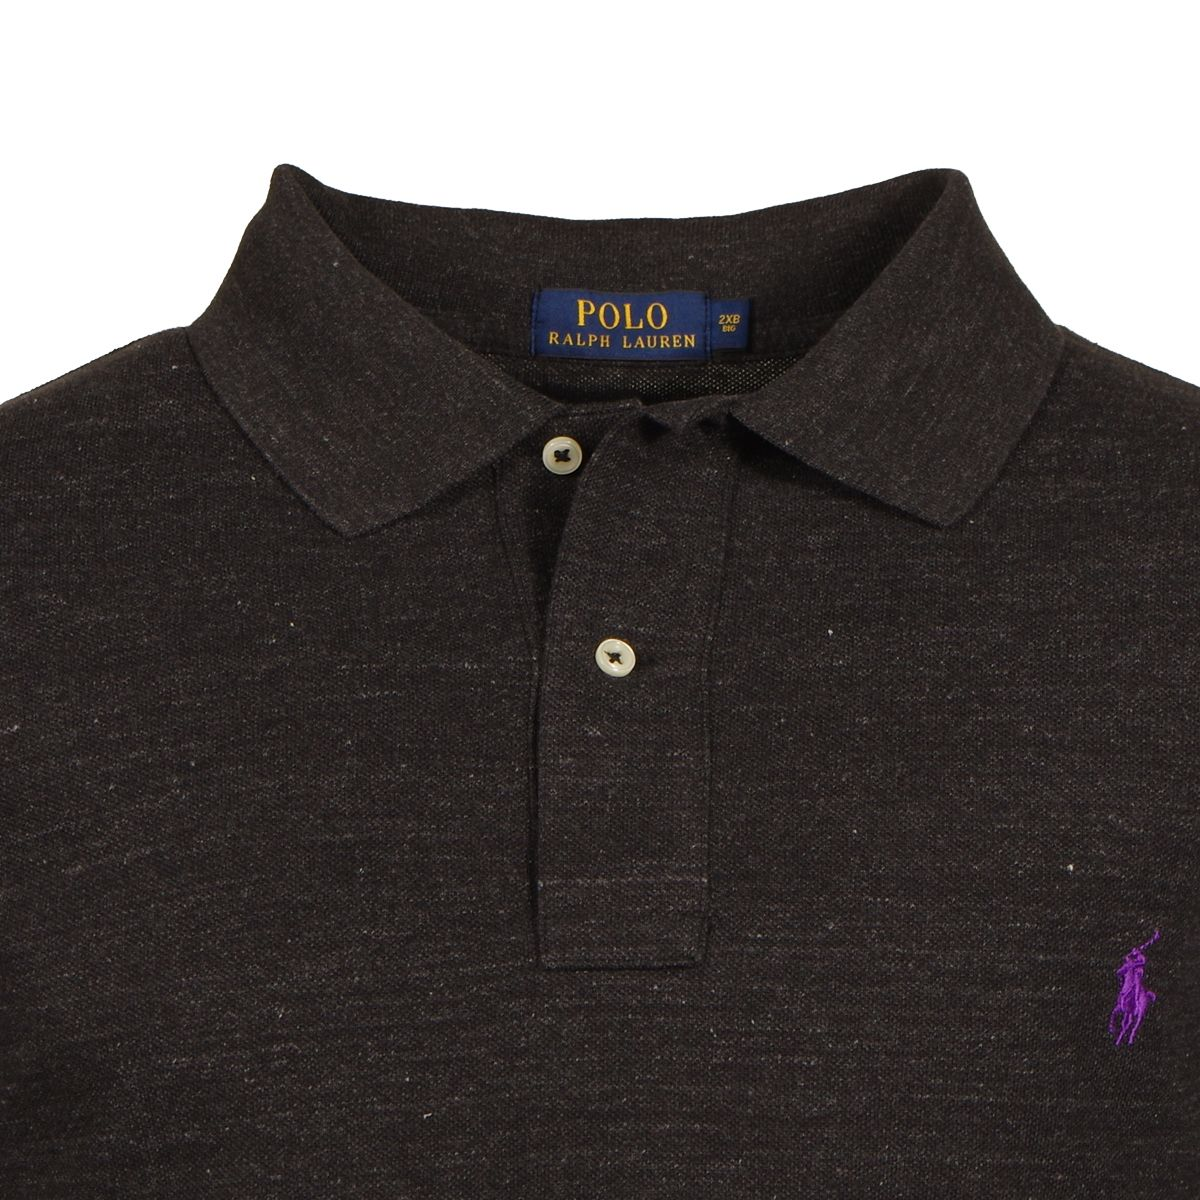 Polo manches longues anthracite grande taille du 2xl au for 6xl ralph lauren polo shirts